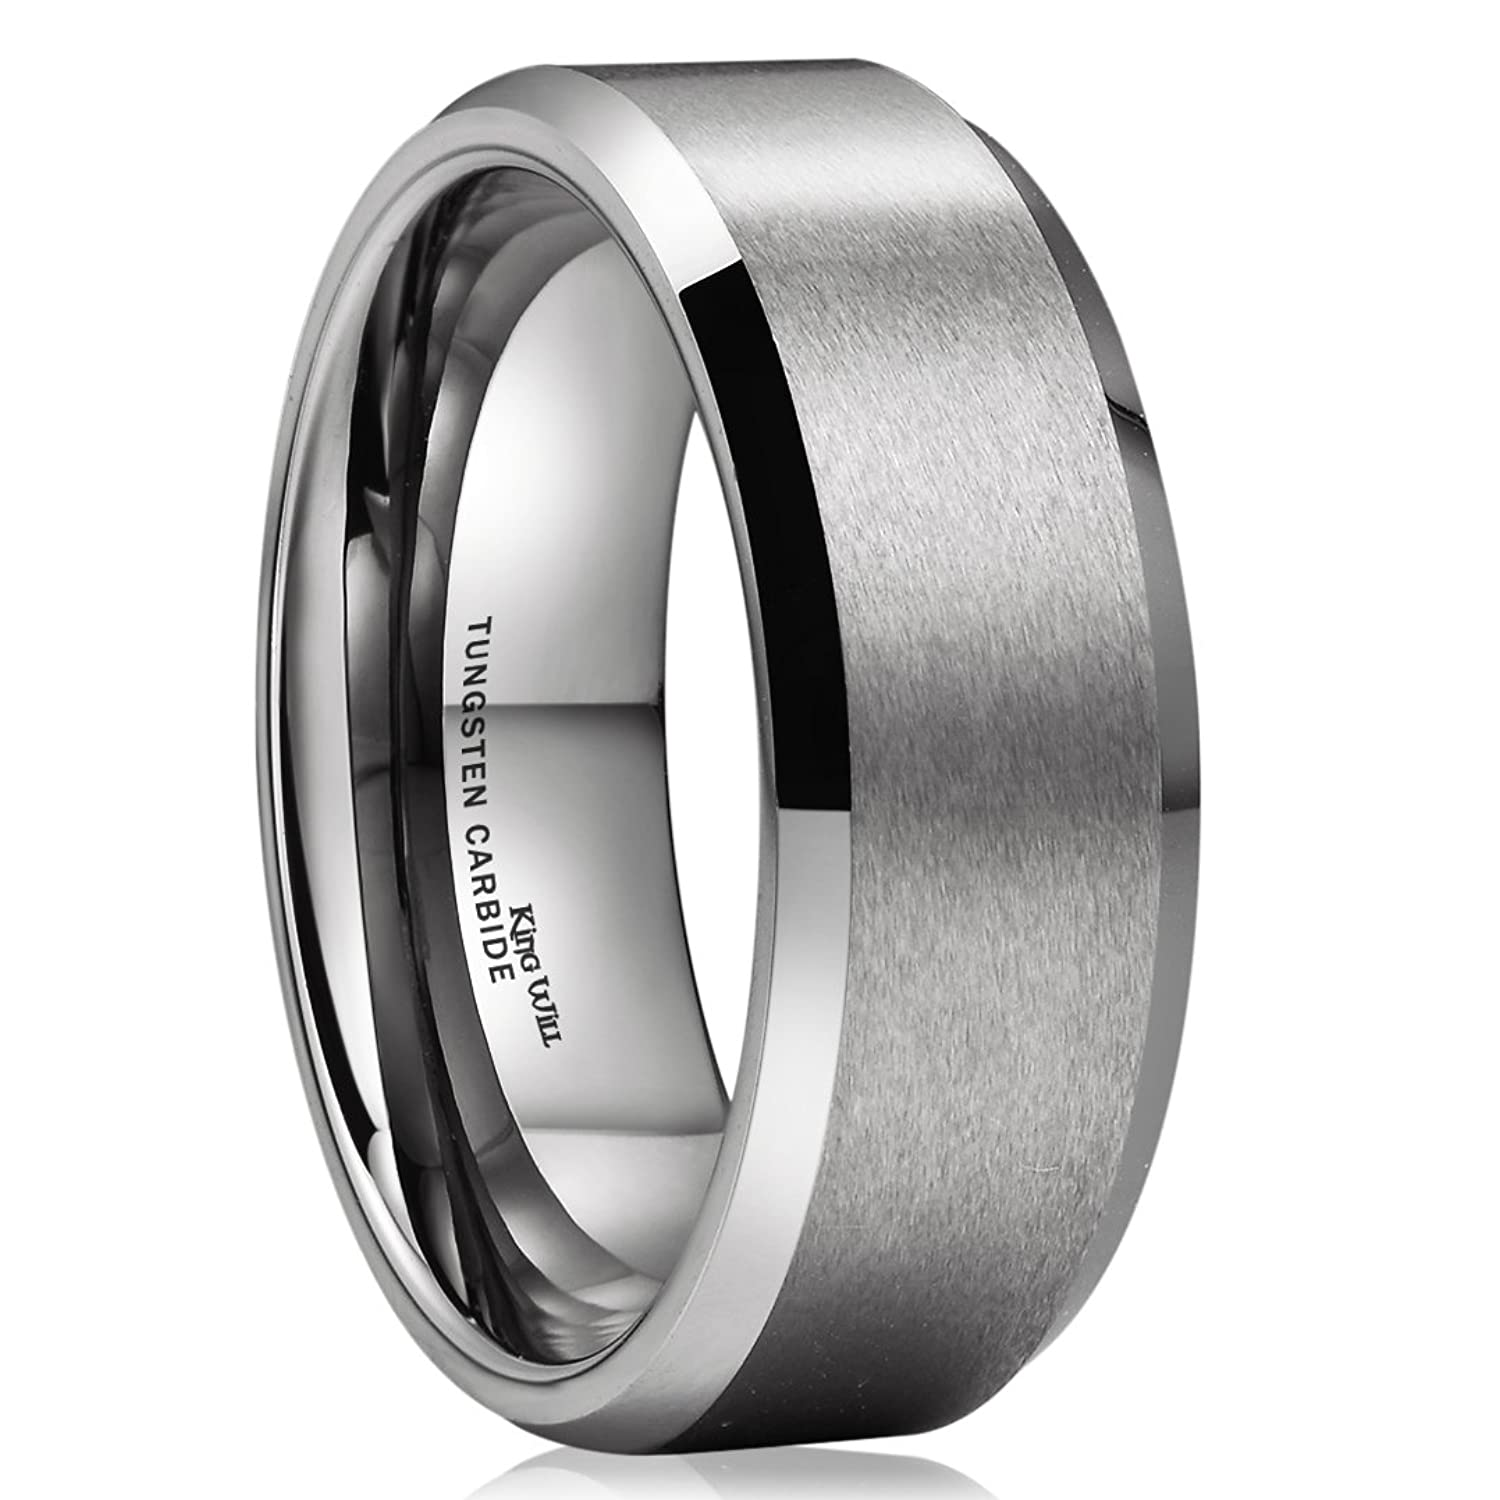 Charmant King Will BASIC Unisex 8mm Tungsten Carbide Matte Polished Finish Wedding  Engagement Band Ring